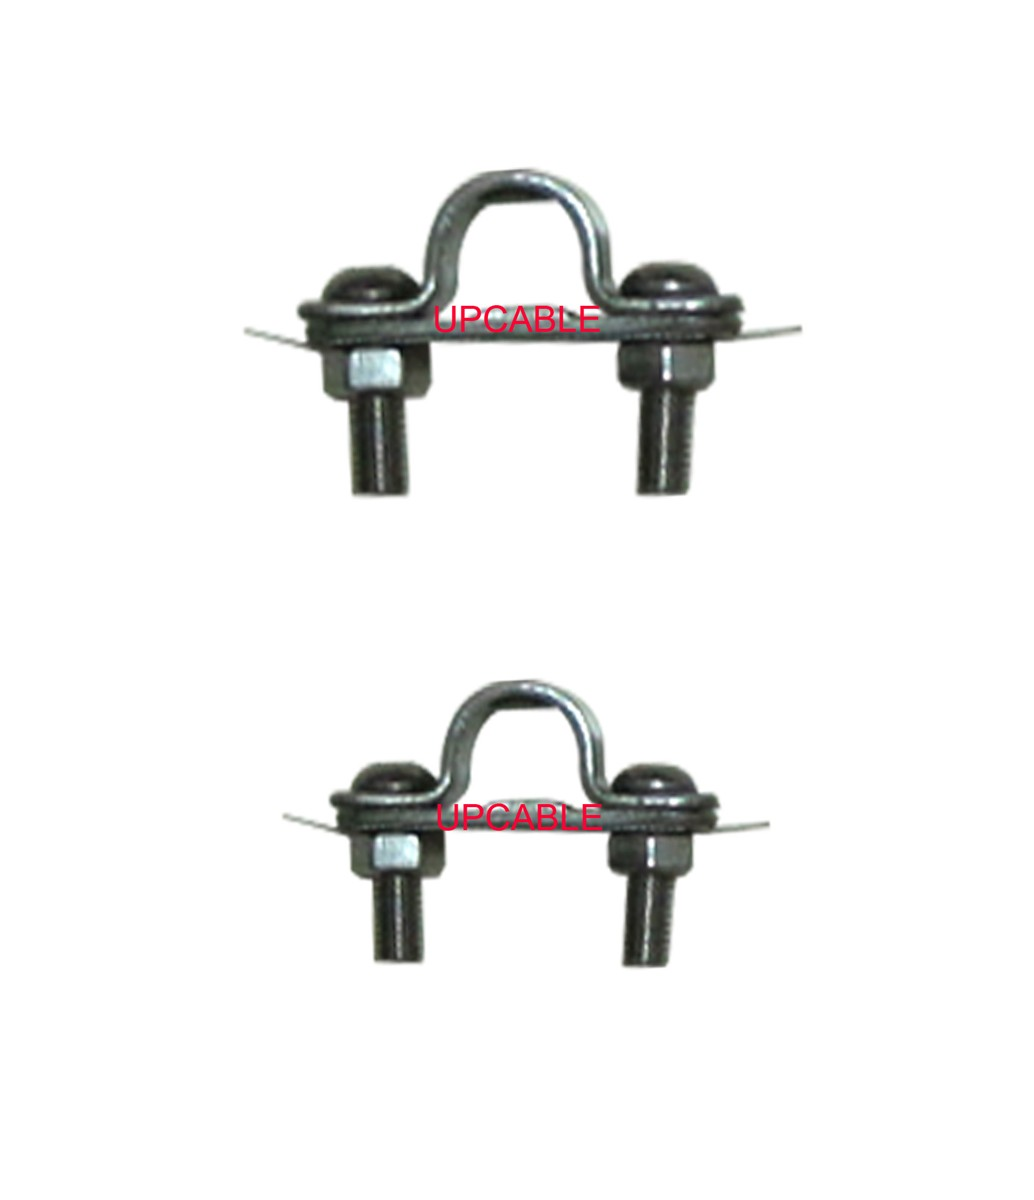 Stainless Steel Carbon Steel Cable Clamp Cable Connection